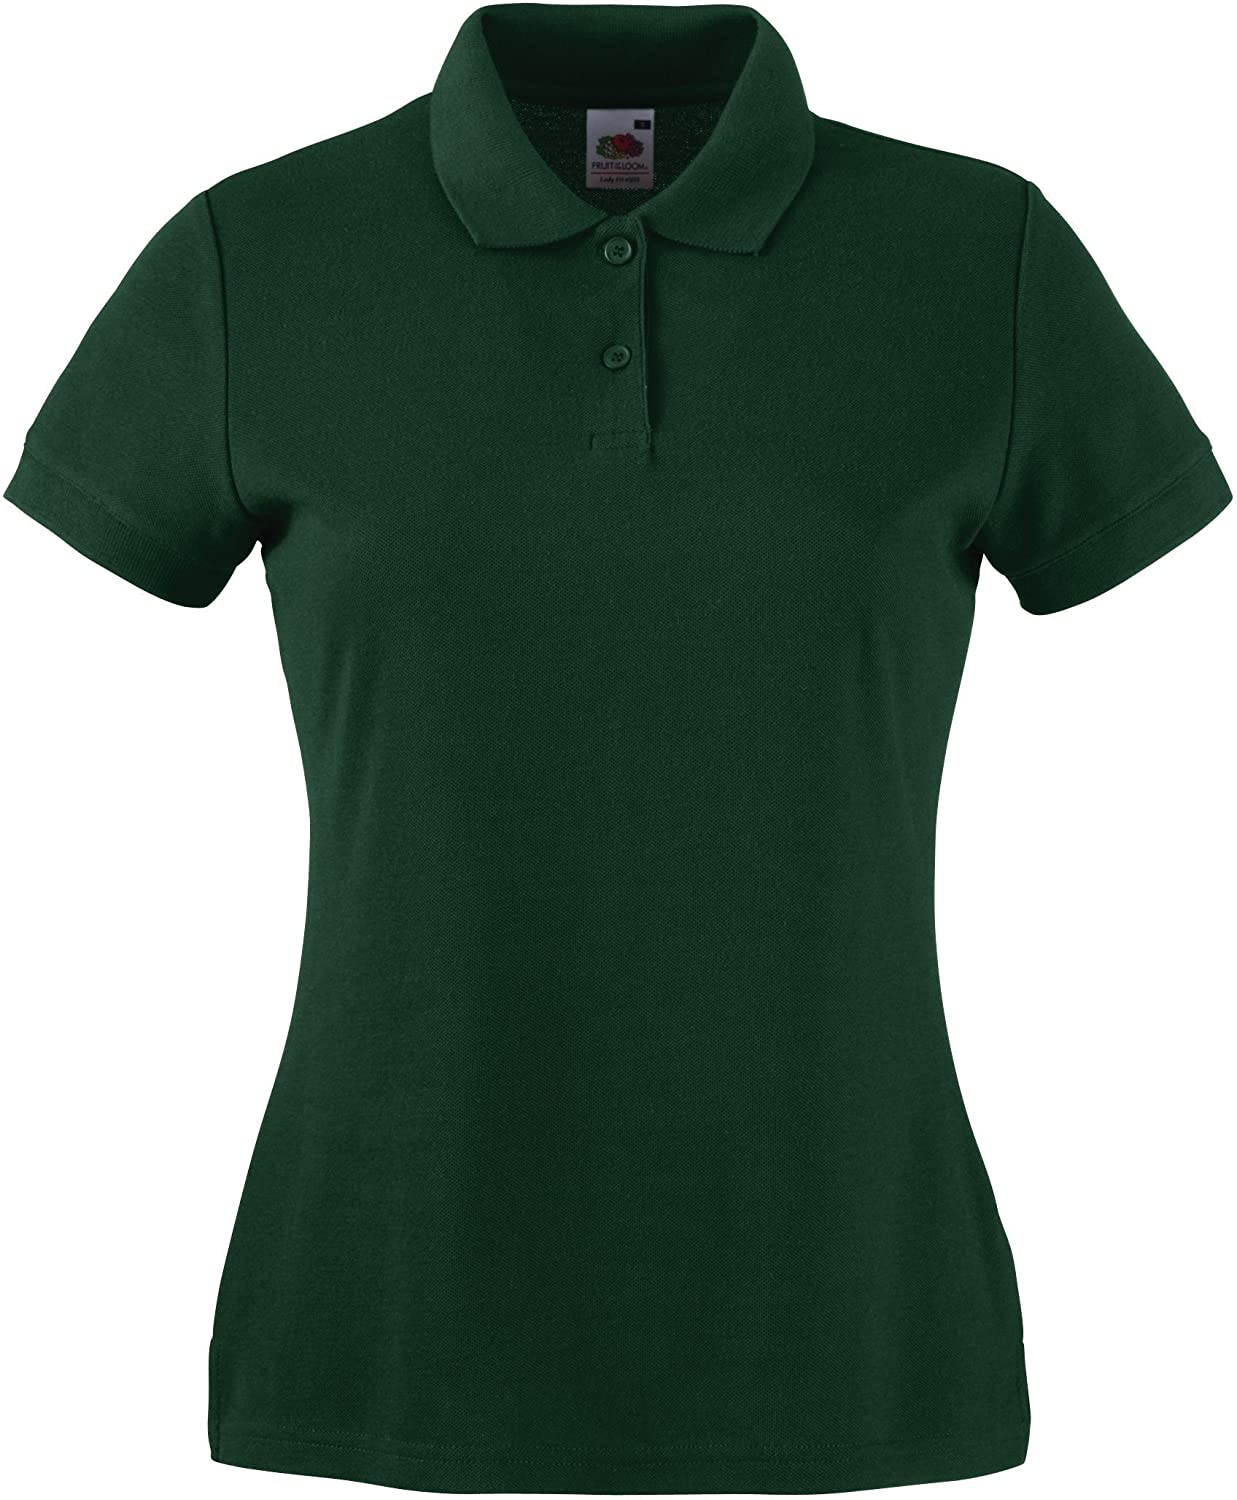 Fruit of the Loom Women's 65/35 Polo Shirt 63-212-0